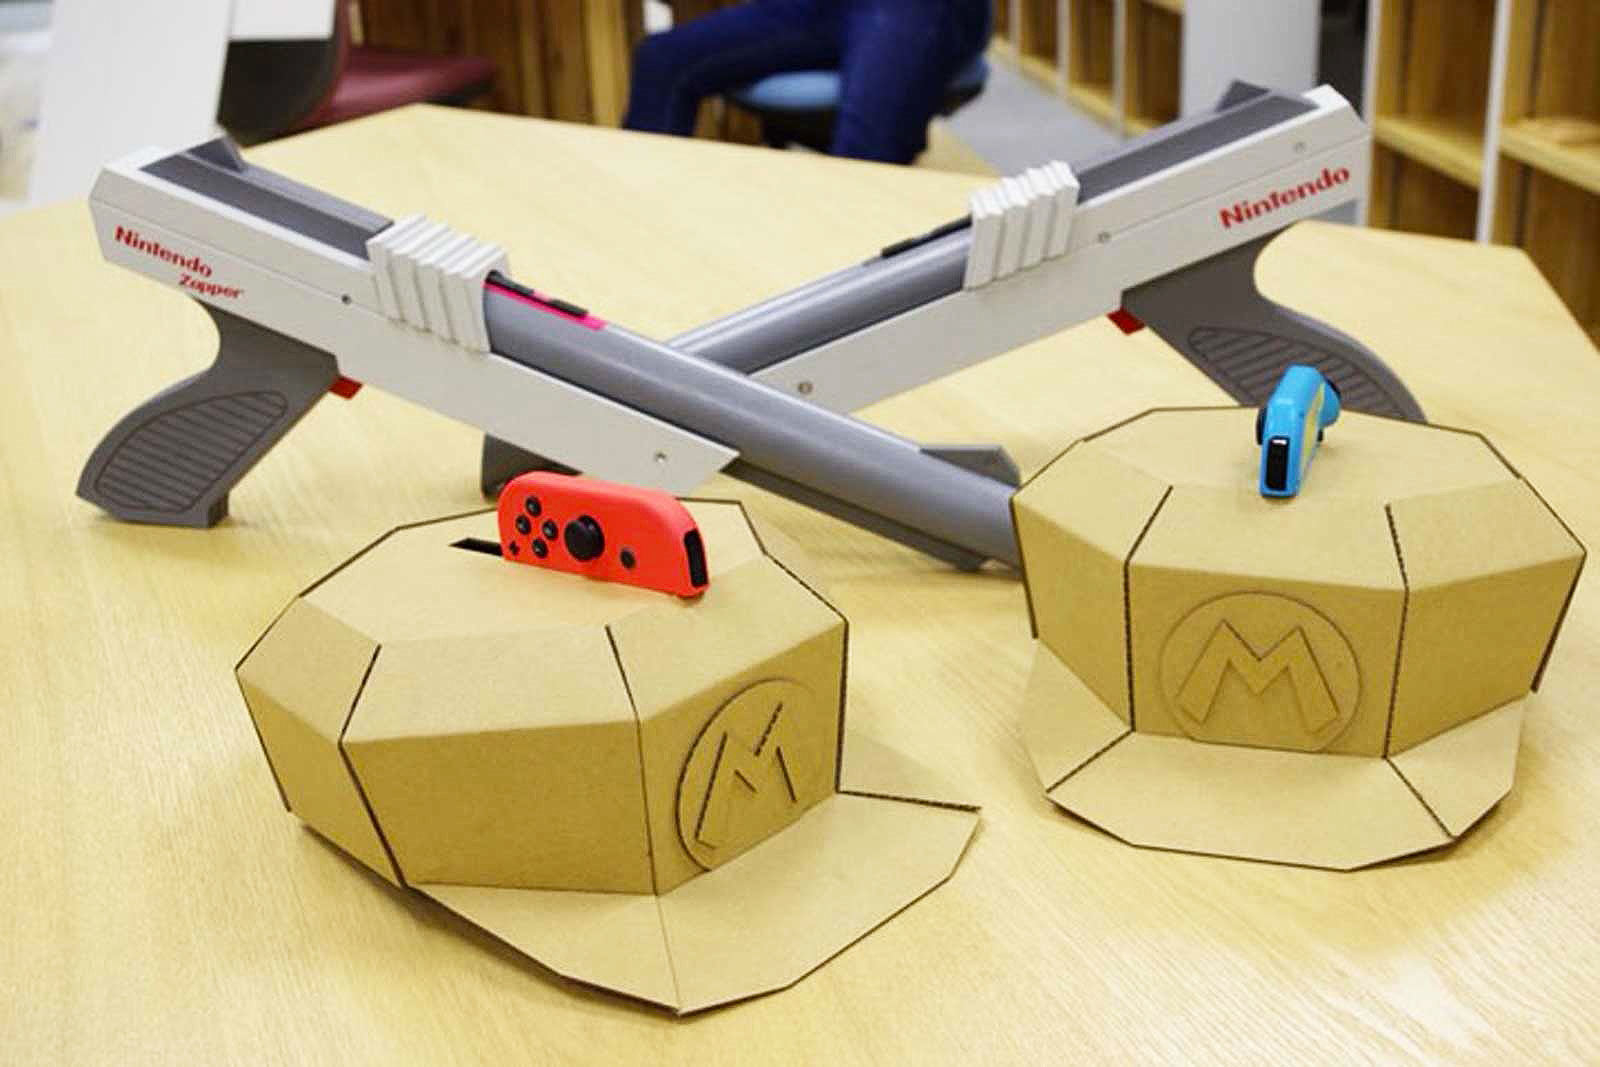 Nintendo Switch Labo laser tag